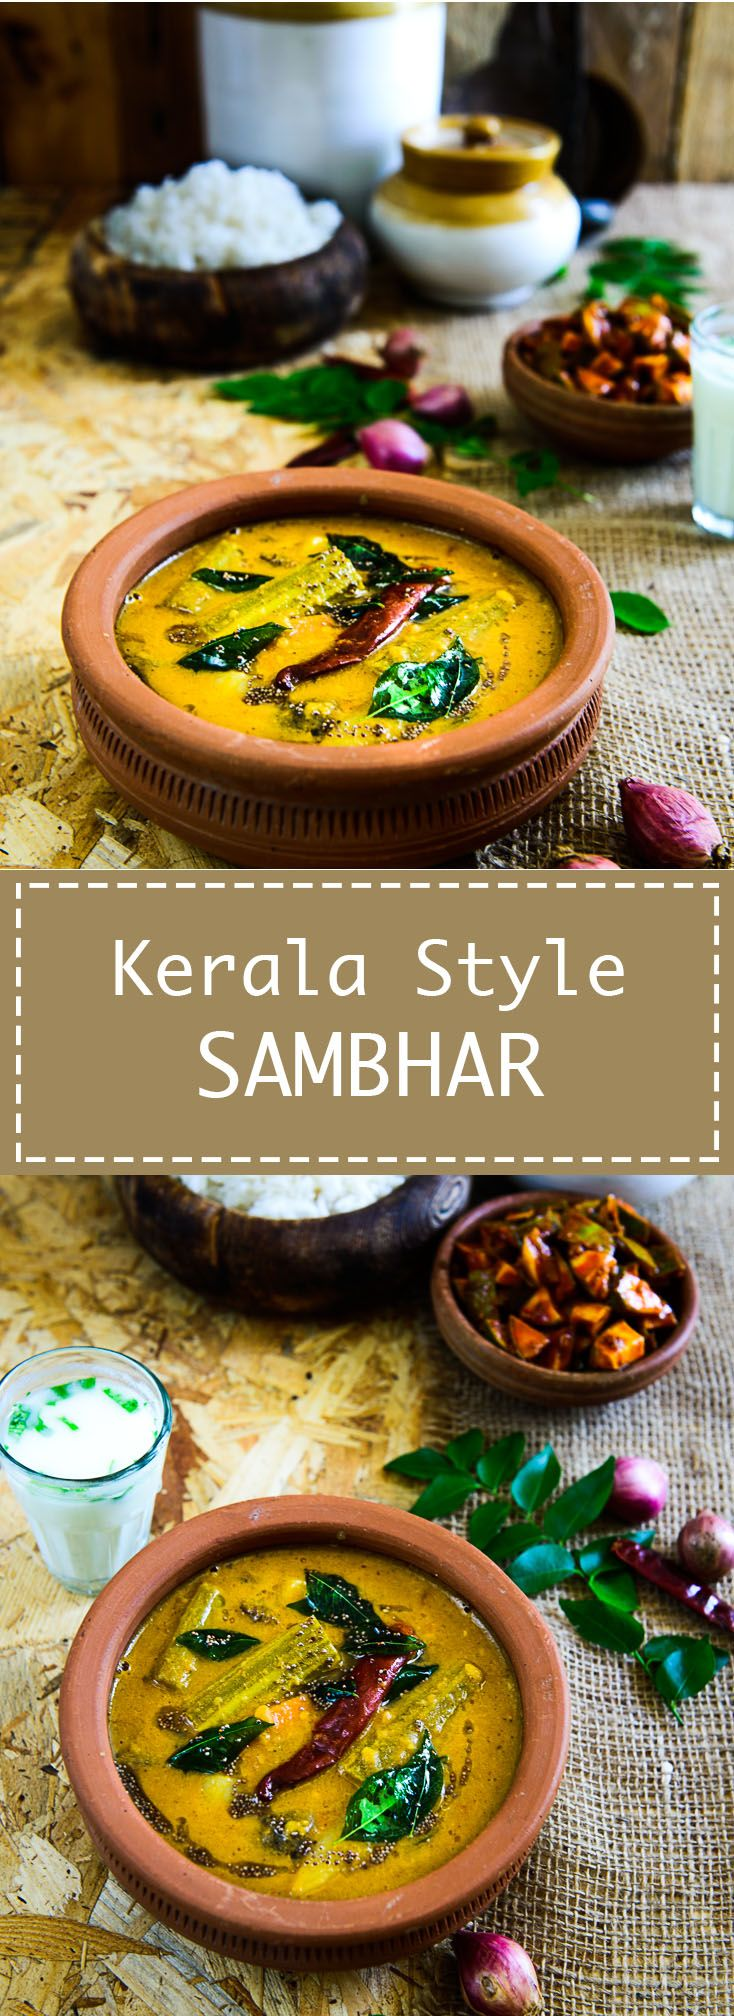 Kerala style sambhar Full of flavours from coconut and freshly ground spices, this Kerala style Sambhar is a must for Onam sadya. Food photography and styling by Neha Mathur.